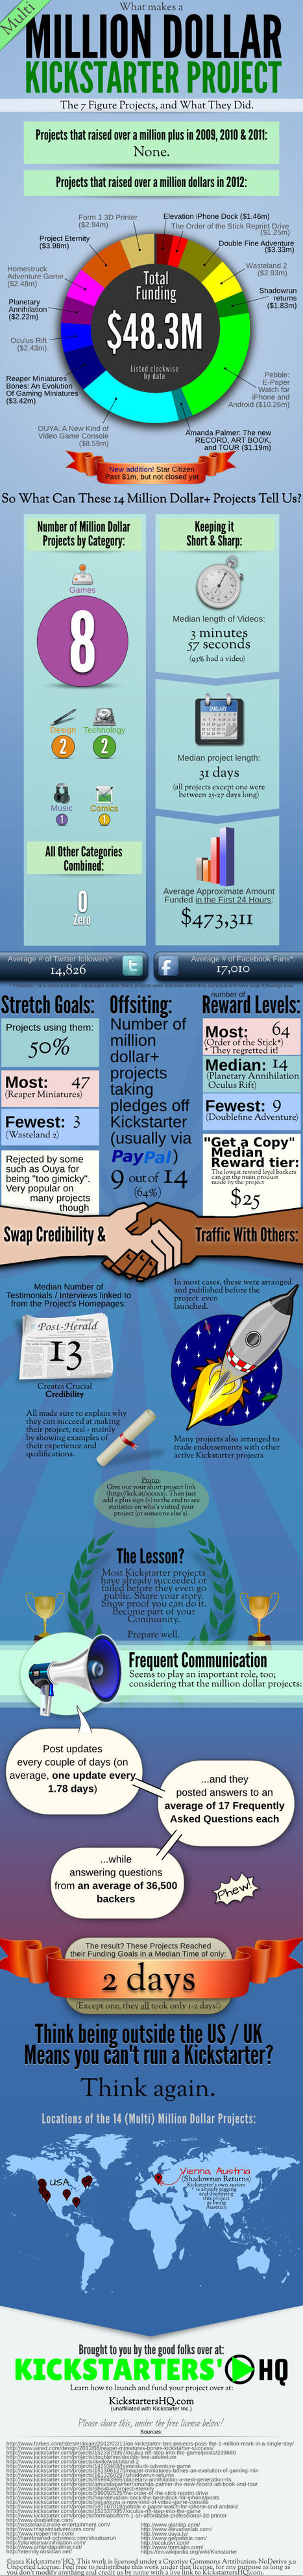 What Makes a (Multi-)Million Dollar Kickstarter Project? (Infographic) | Startup universe | Scoop.it